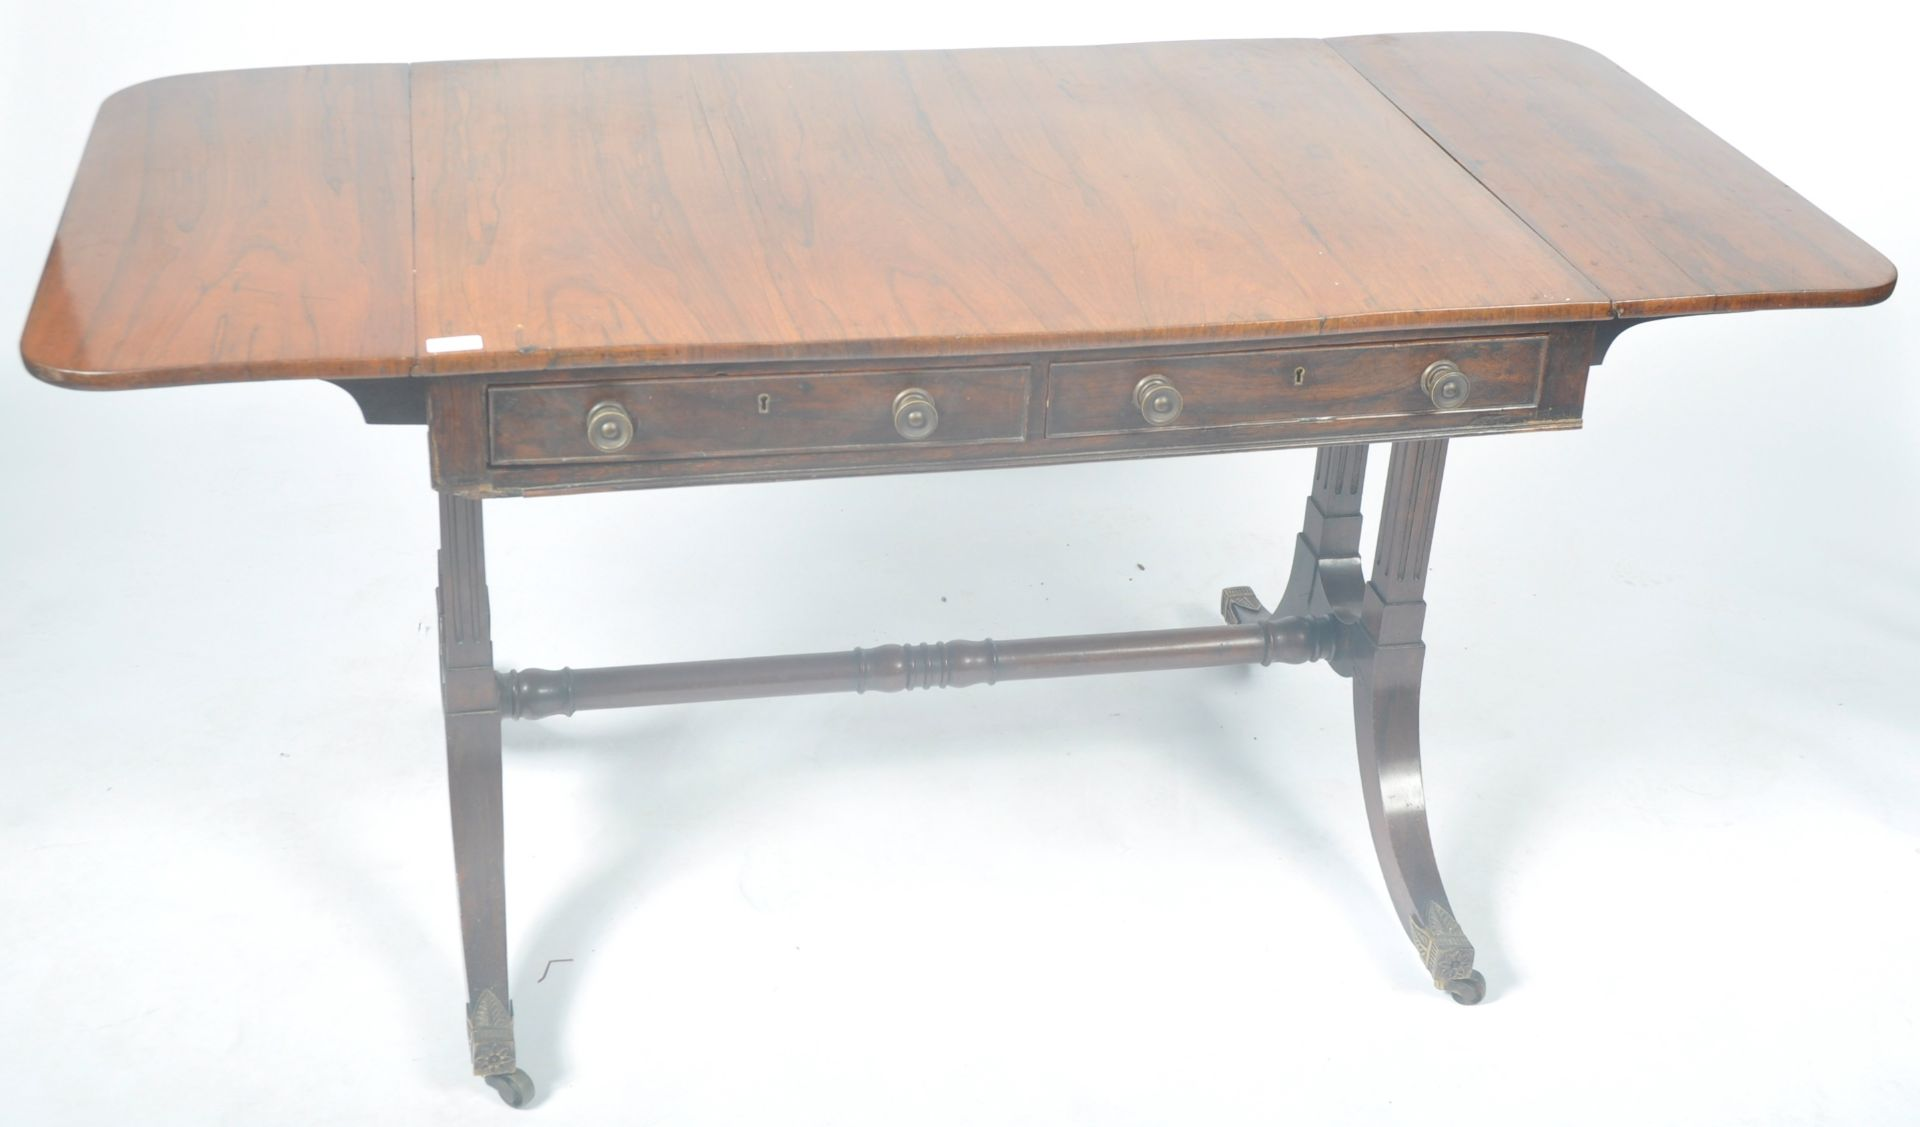 ANTIQUE ROSEWOOD REGENCY SOFA TABLE RETAILED BY HARRIS OF LONDON - Image 8 of 10